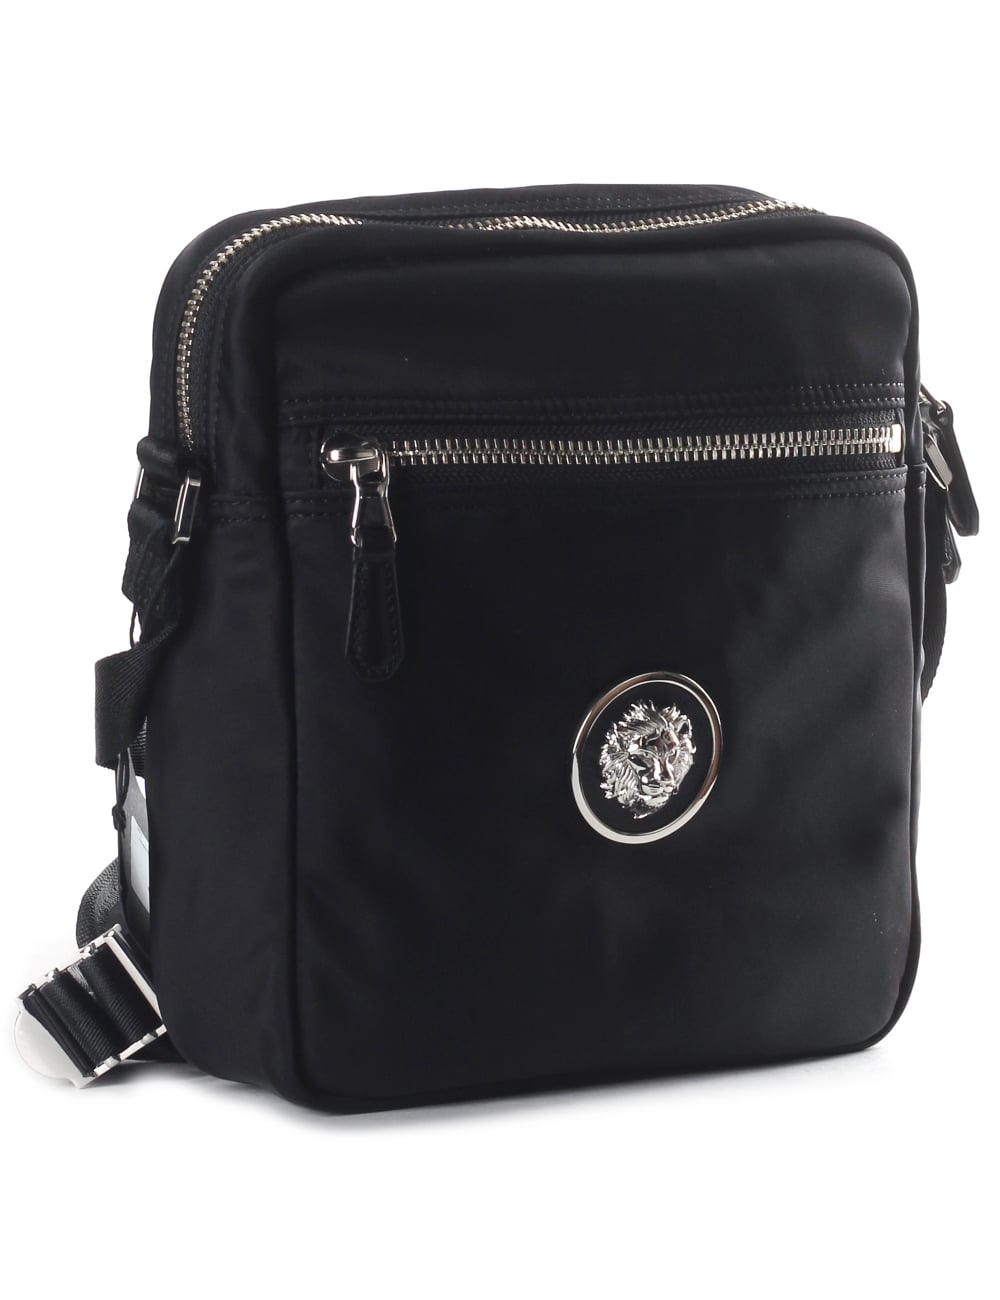 d4eafe81d6 Versus Versace Small Lion Head Men s Messenger Bag